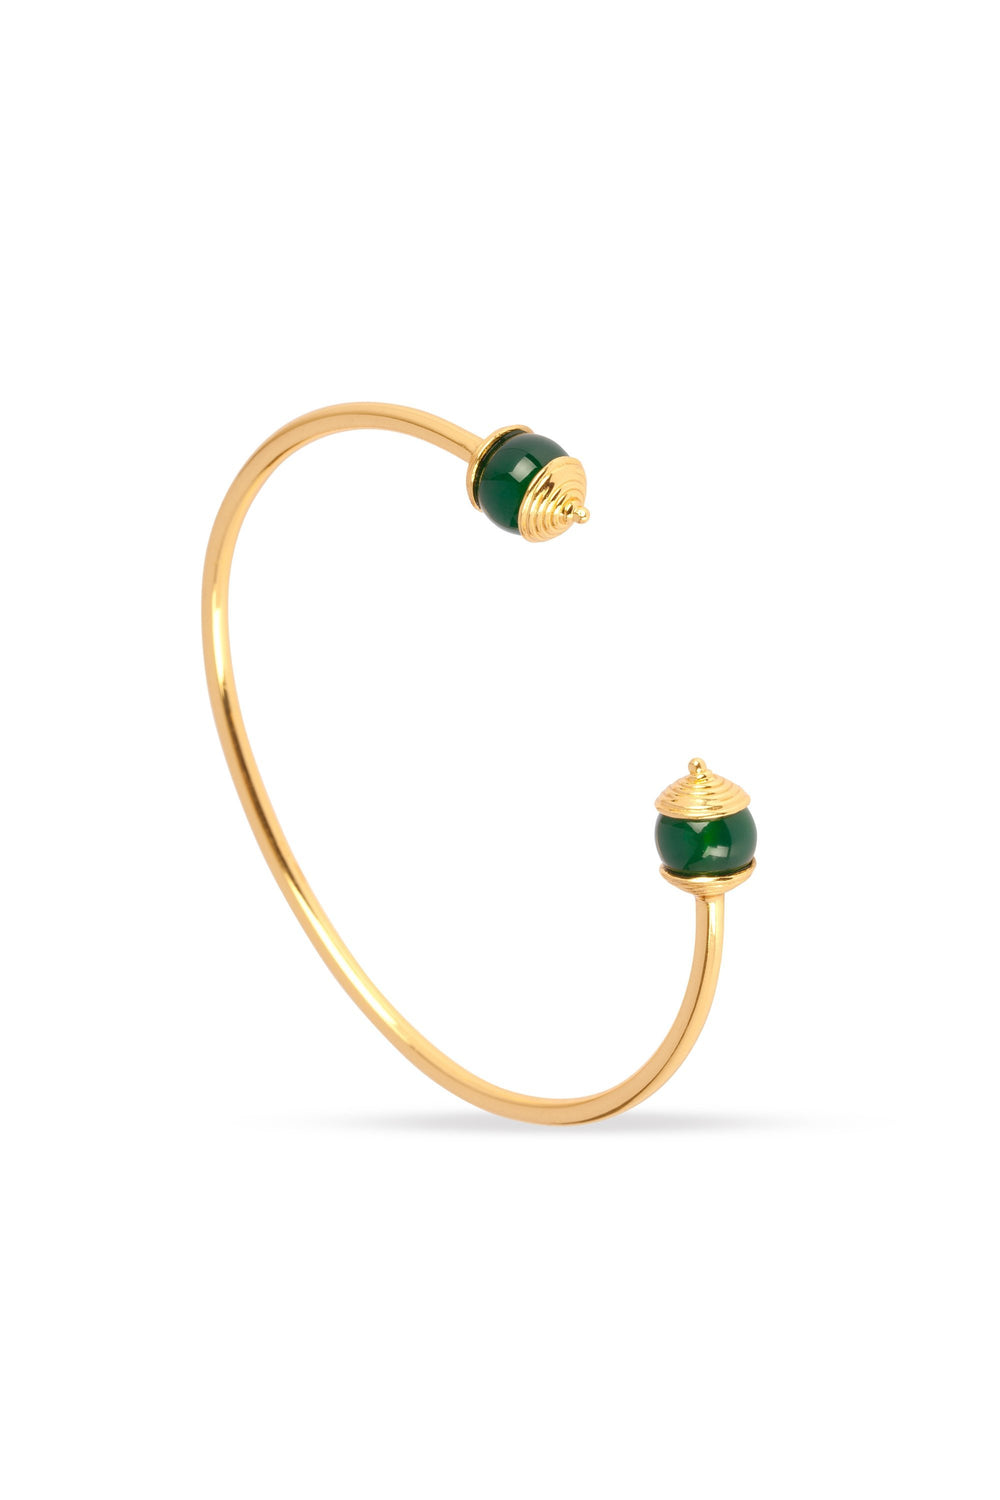 Green Onyx and Gold Bangle for Luck, Protection & Health